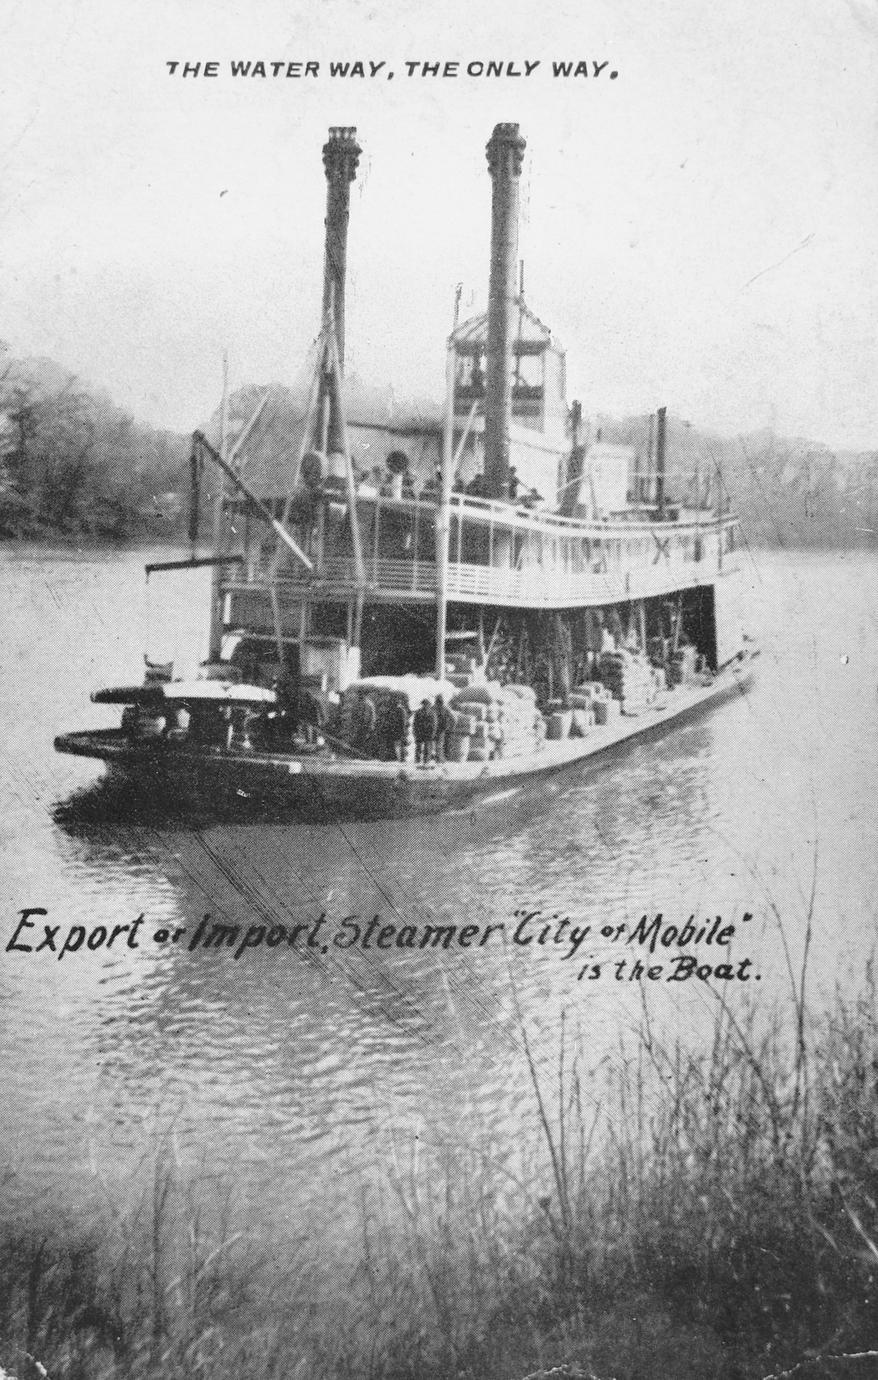 City of Mobile (Packet, 1898-1916)